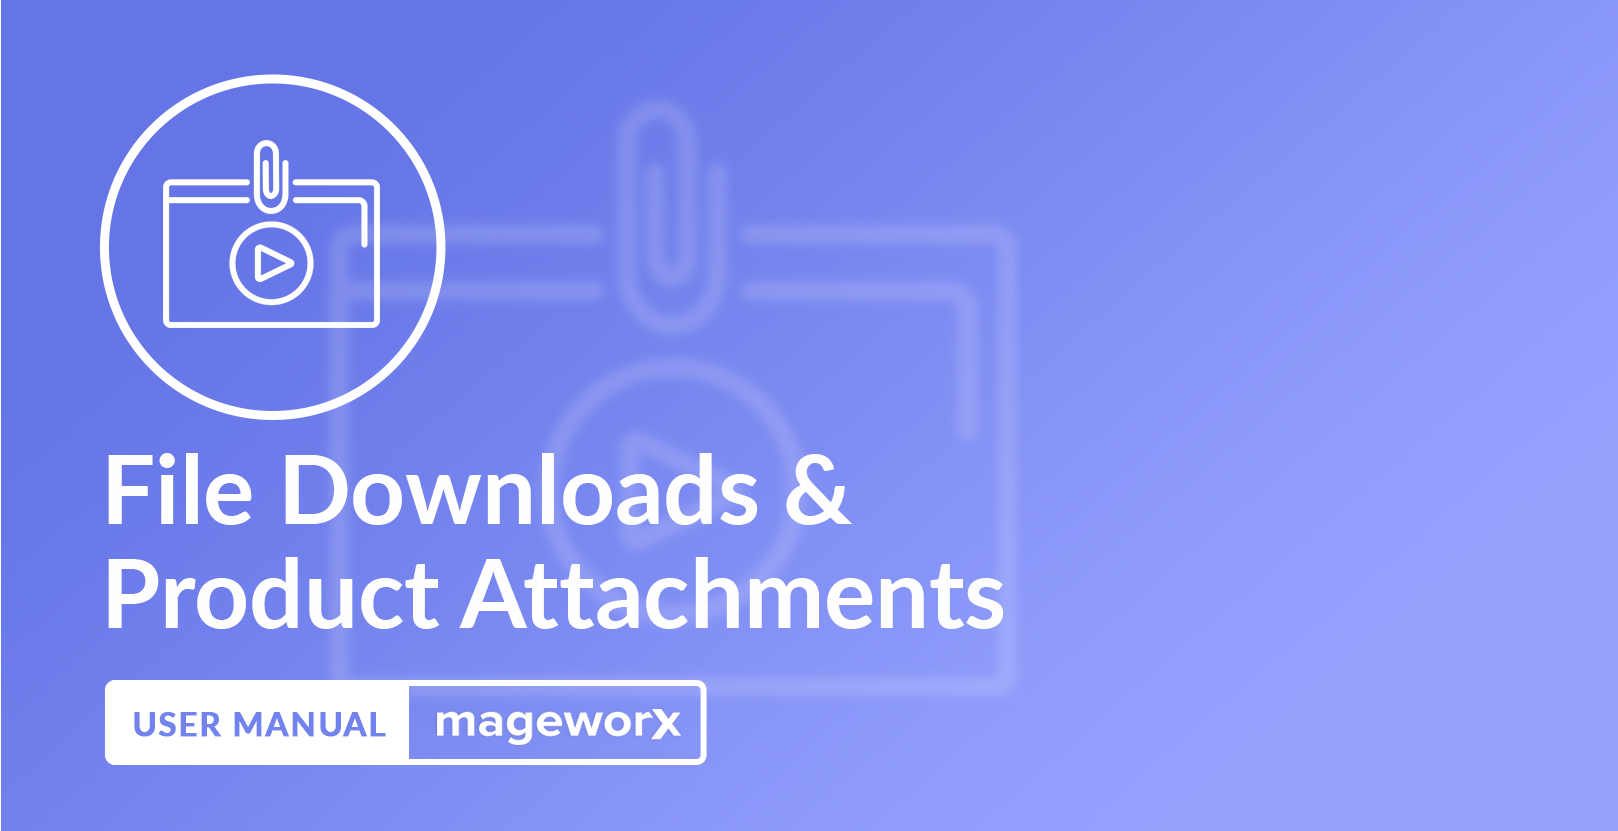 File Downloads and Product Attachments Cover